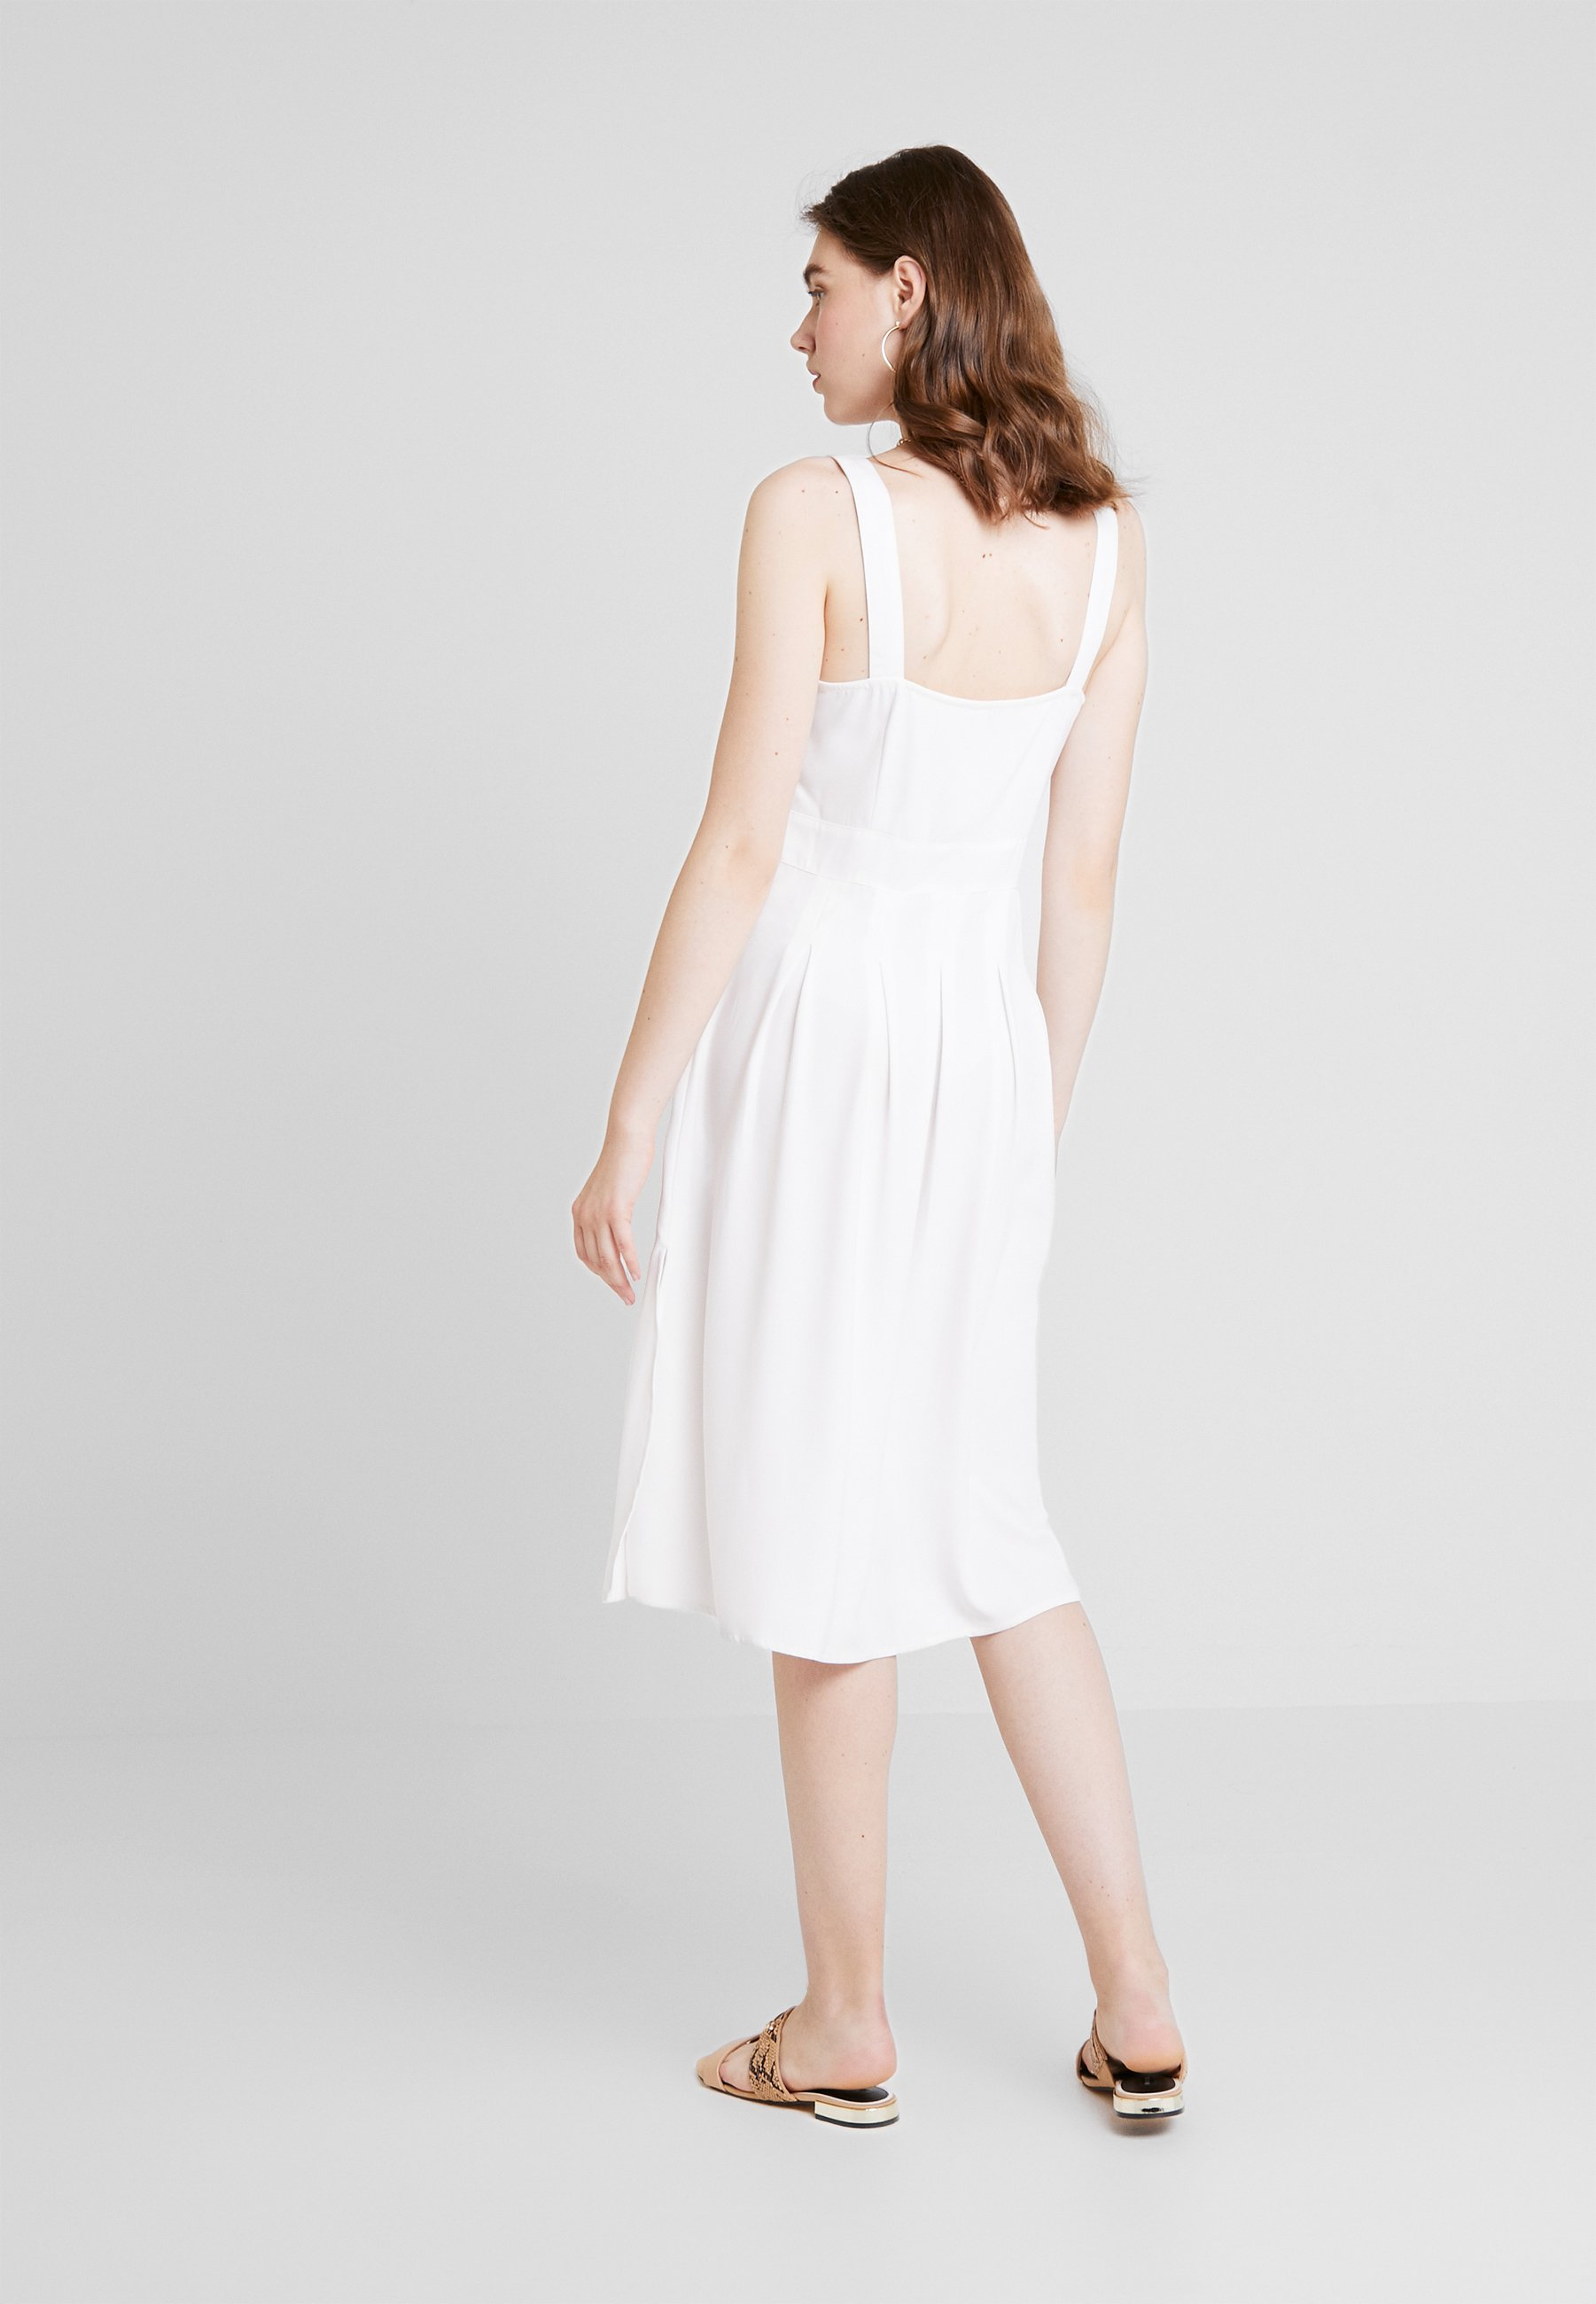 Nelly White DressRobe By Nly Front Button Chemise 1FKlJcT3